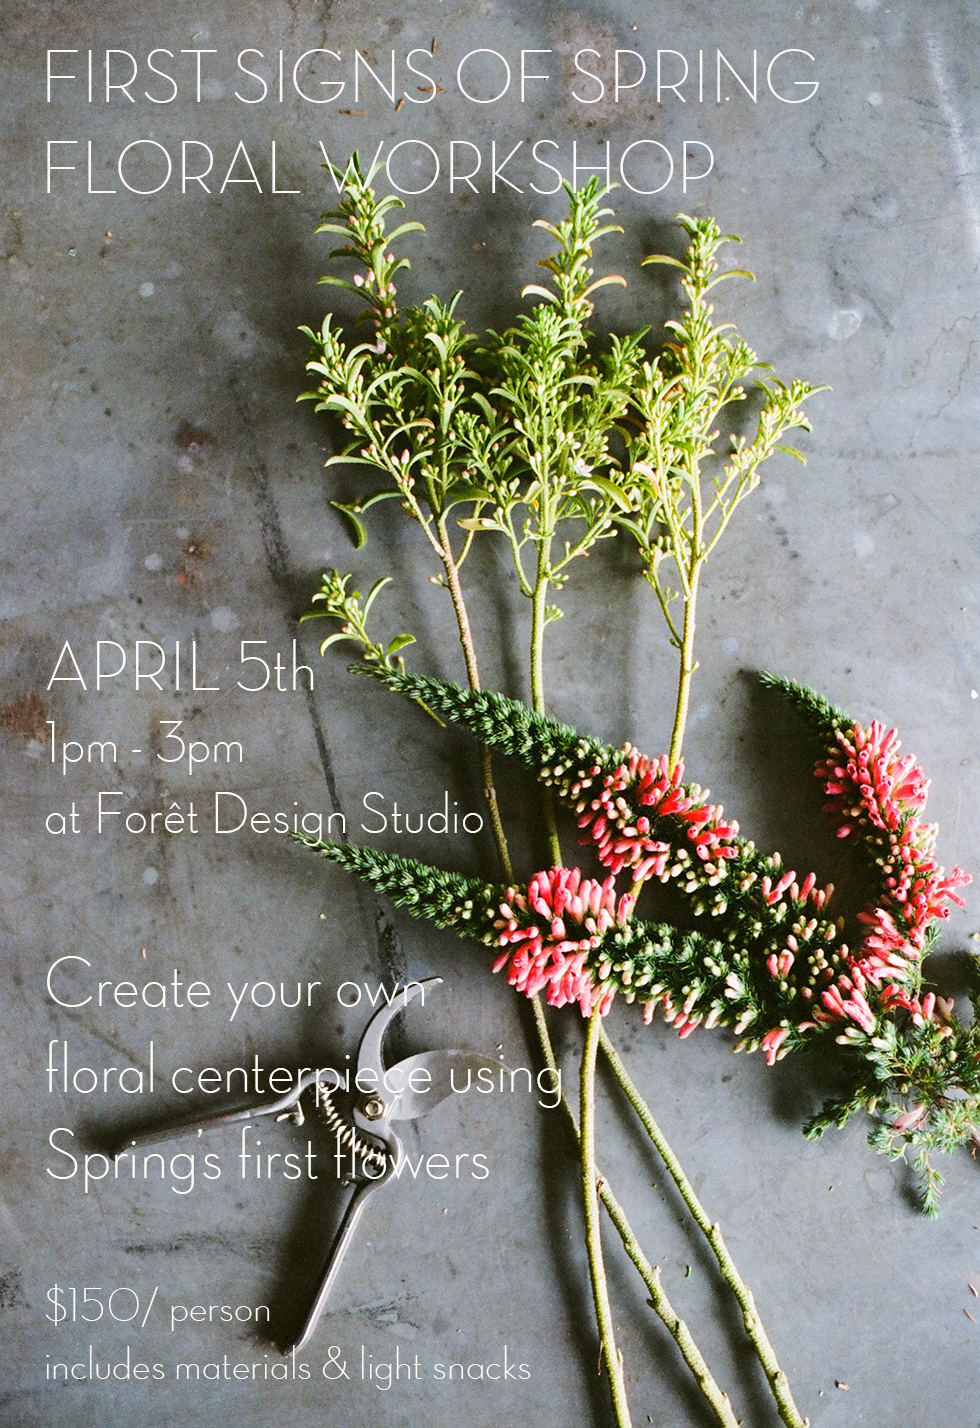 Email ladies@foretdesignstudio.com to signup!   photo by white loft studio